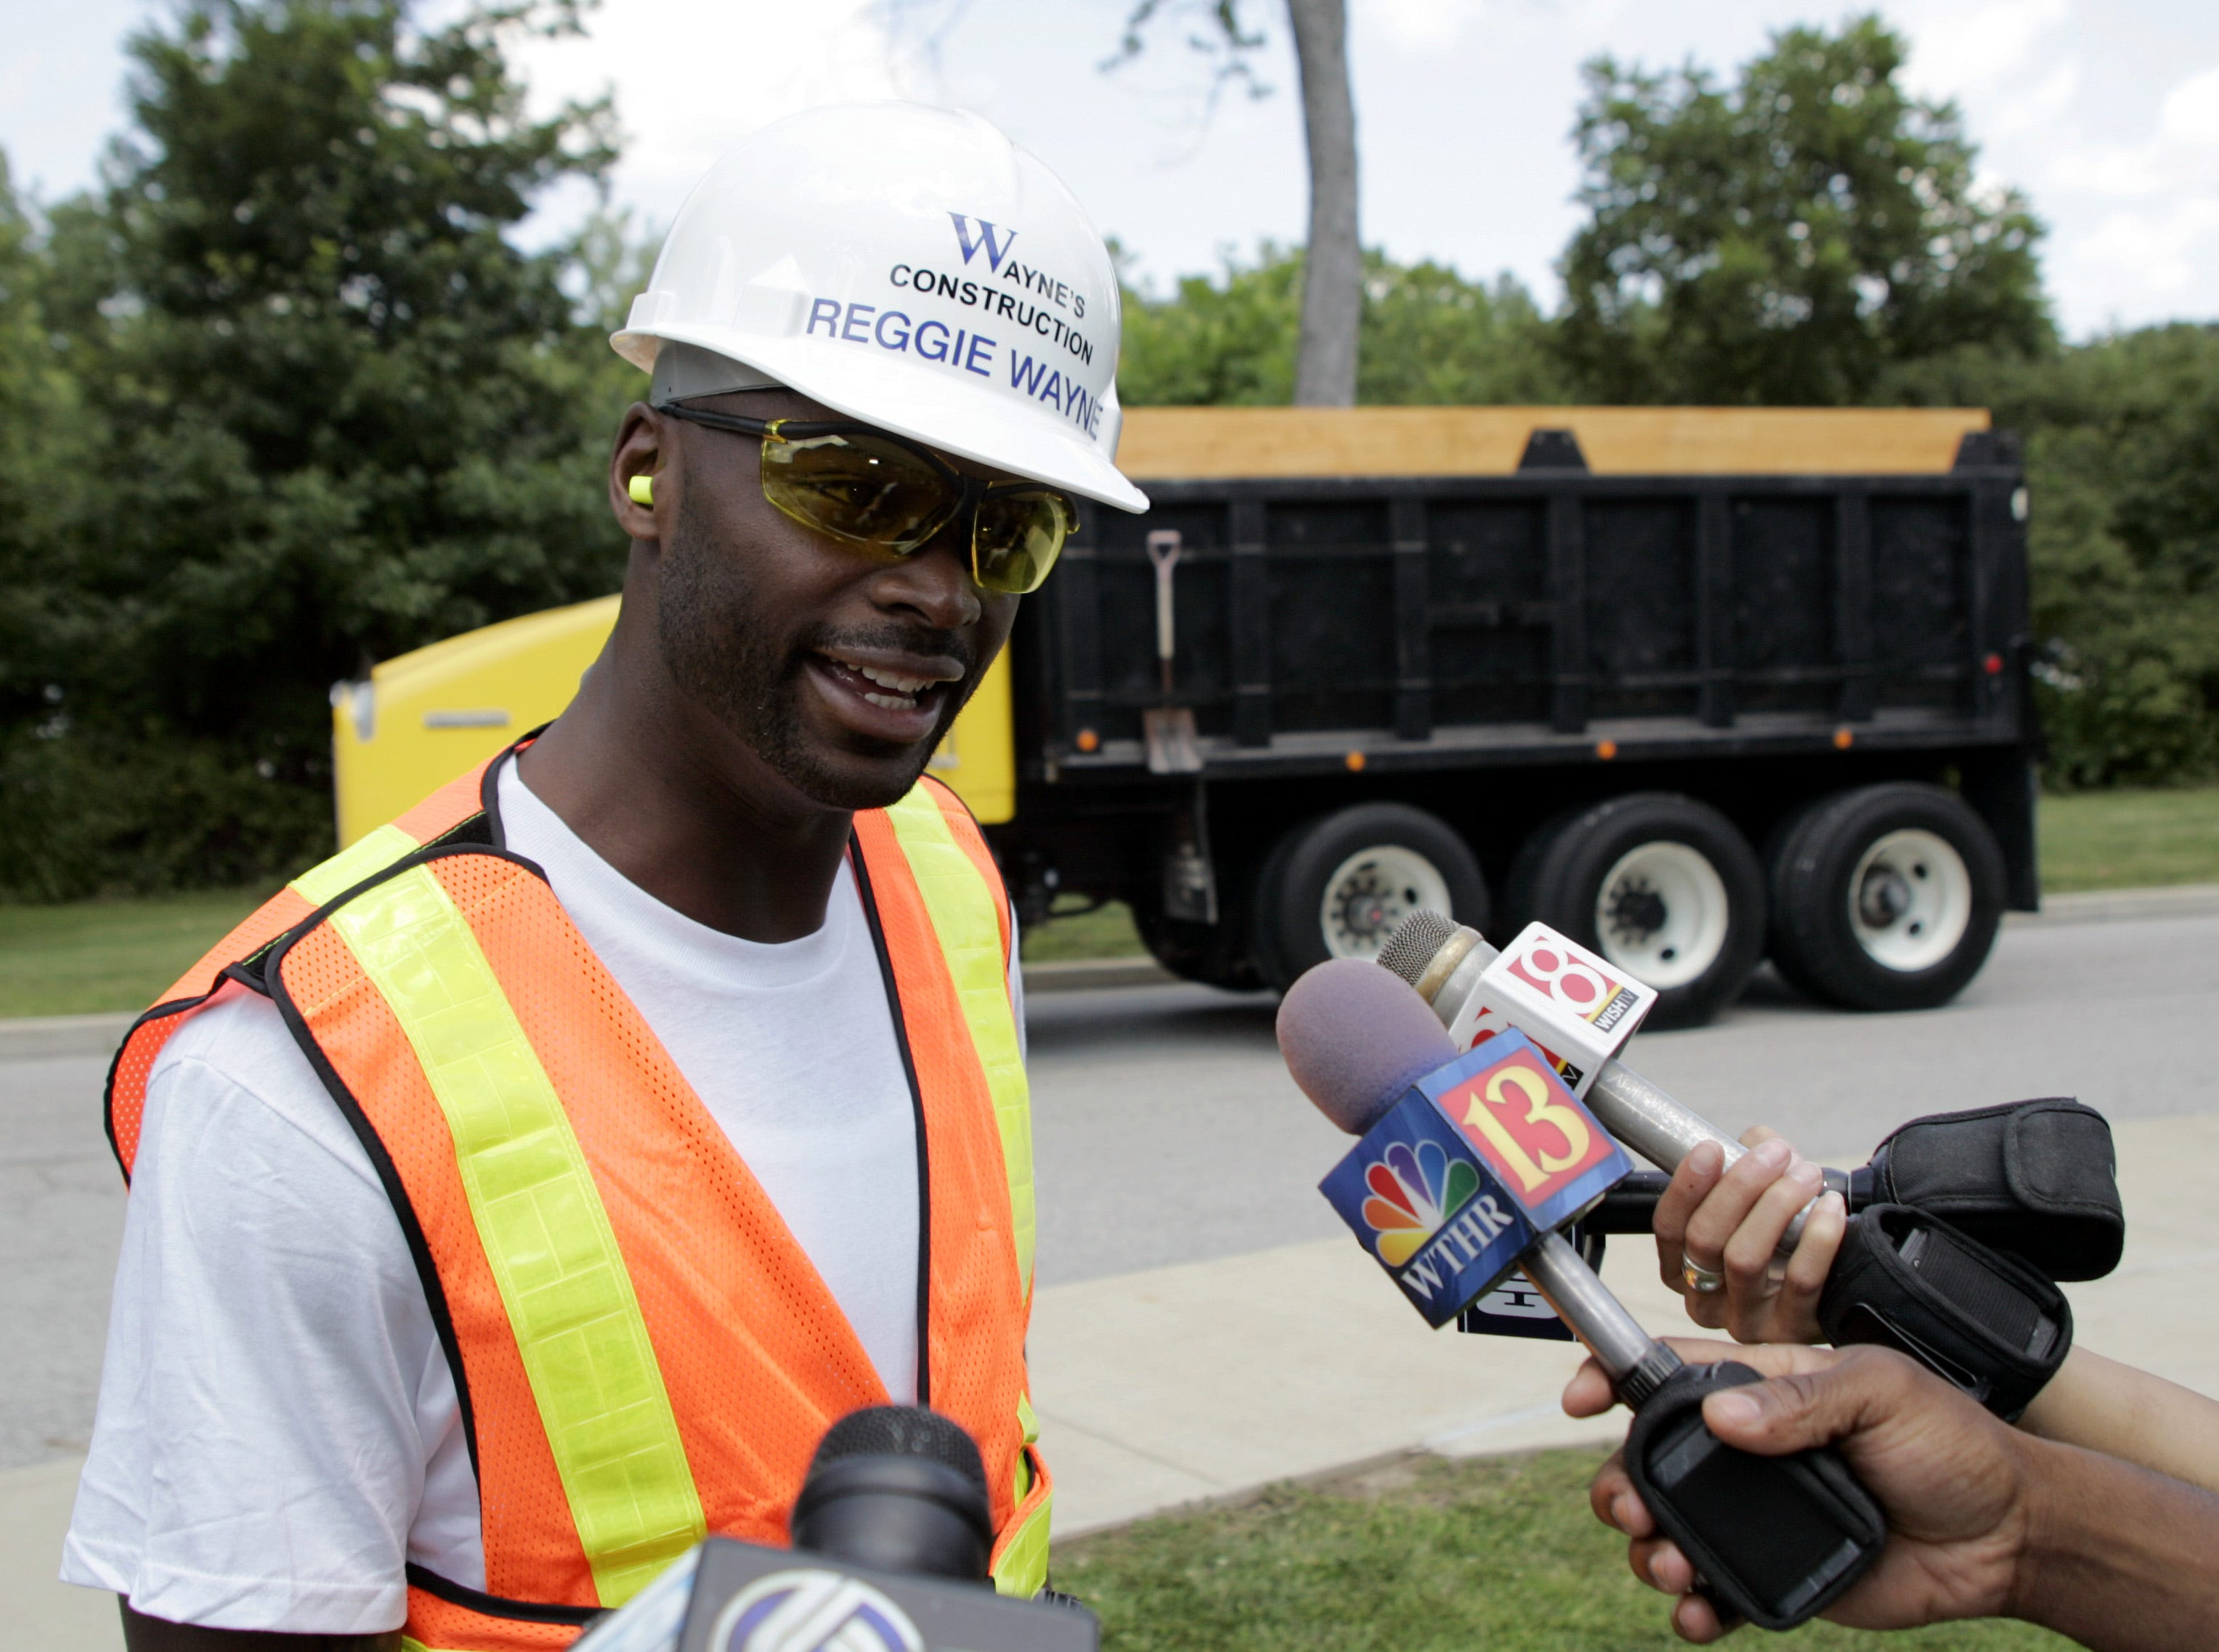 Indianapolis Colts wide receiver Reggie Wayne talks to the media after arriving at the Colts NFL football training camp in a rented dump truck in Terre Haute, Ind., Sunday, Aug. 2, 2009.